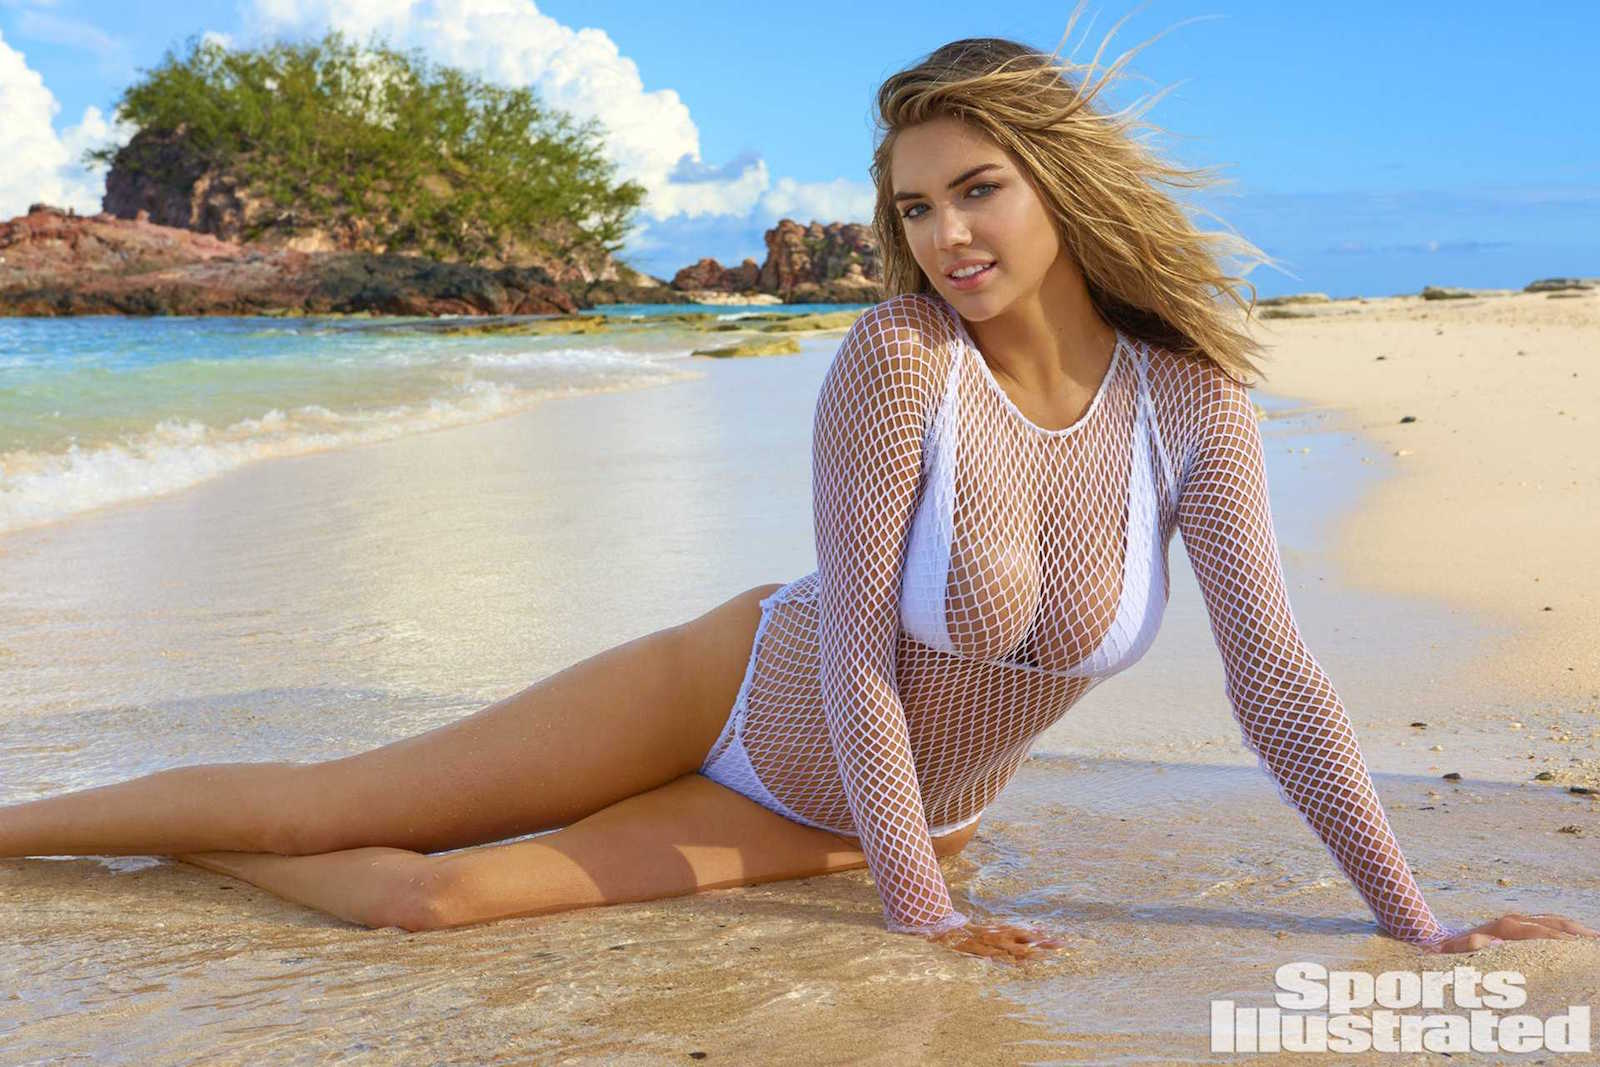 Kate_upton_who_is_posing_for_sports_illustrated_in_arube_main_image